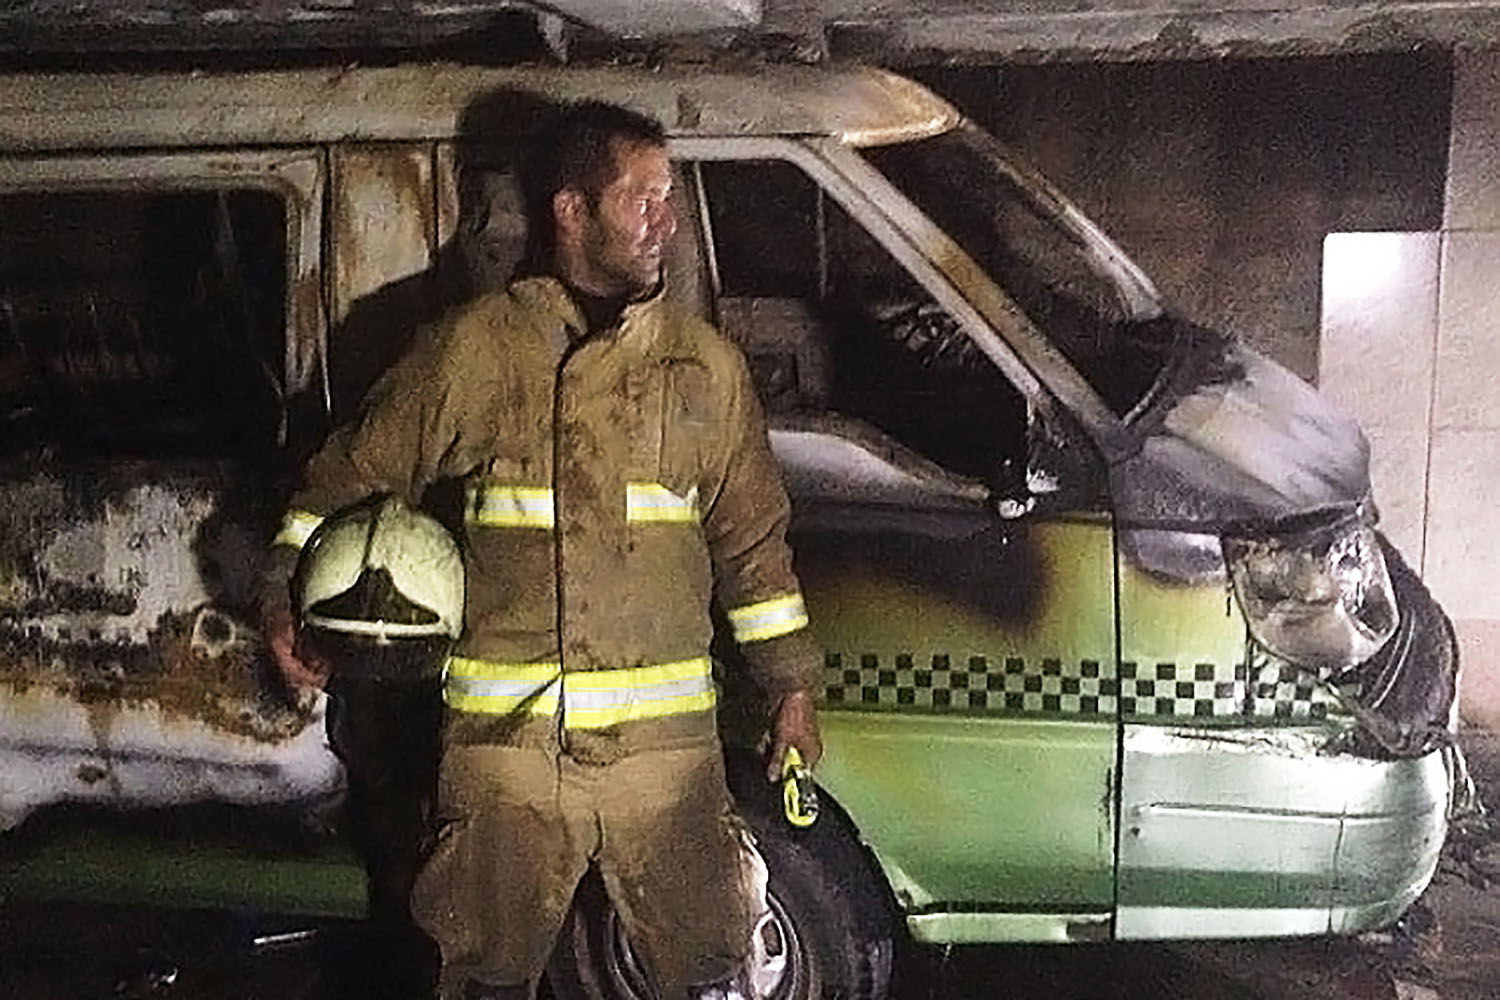 Photo of Mohsen, a refugee from Iran, at work as a firefighter in Iran. He is standing in his uniform in front of a burned out ambulance, covered in soot.